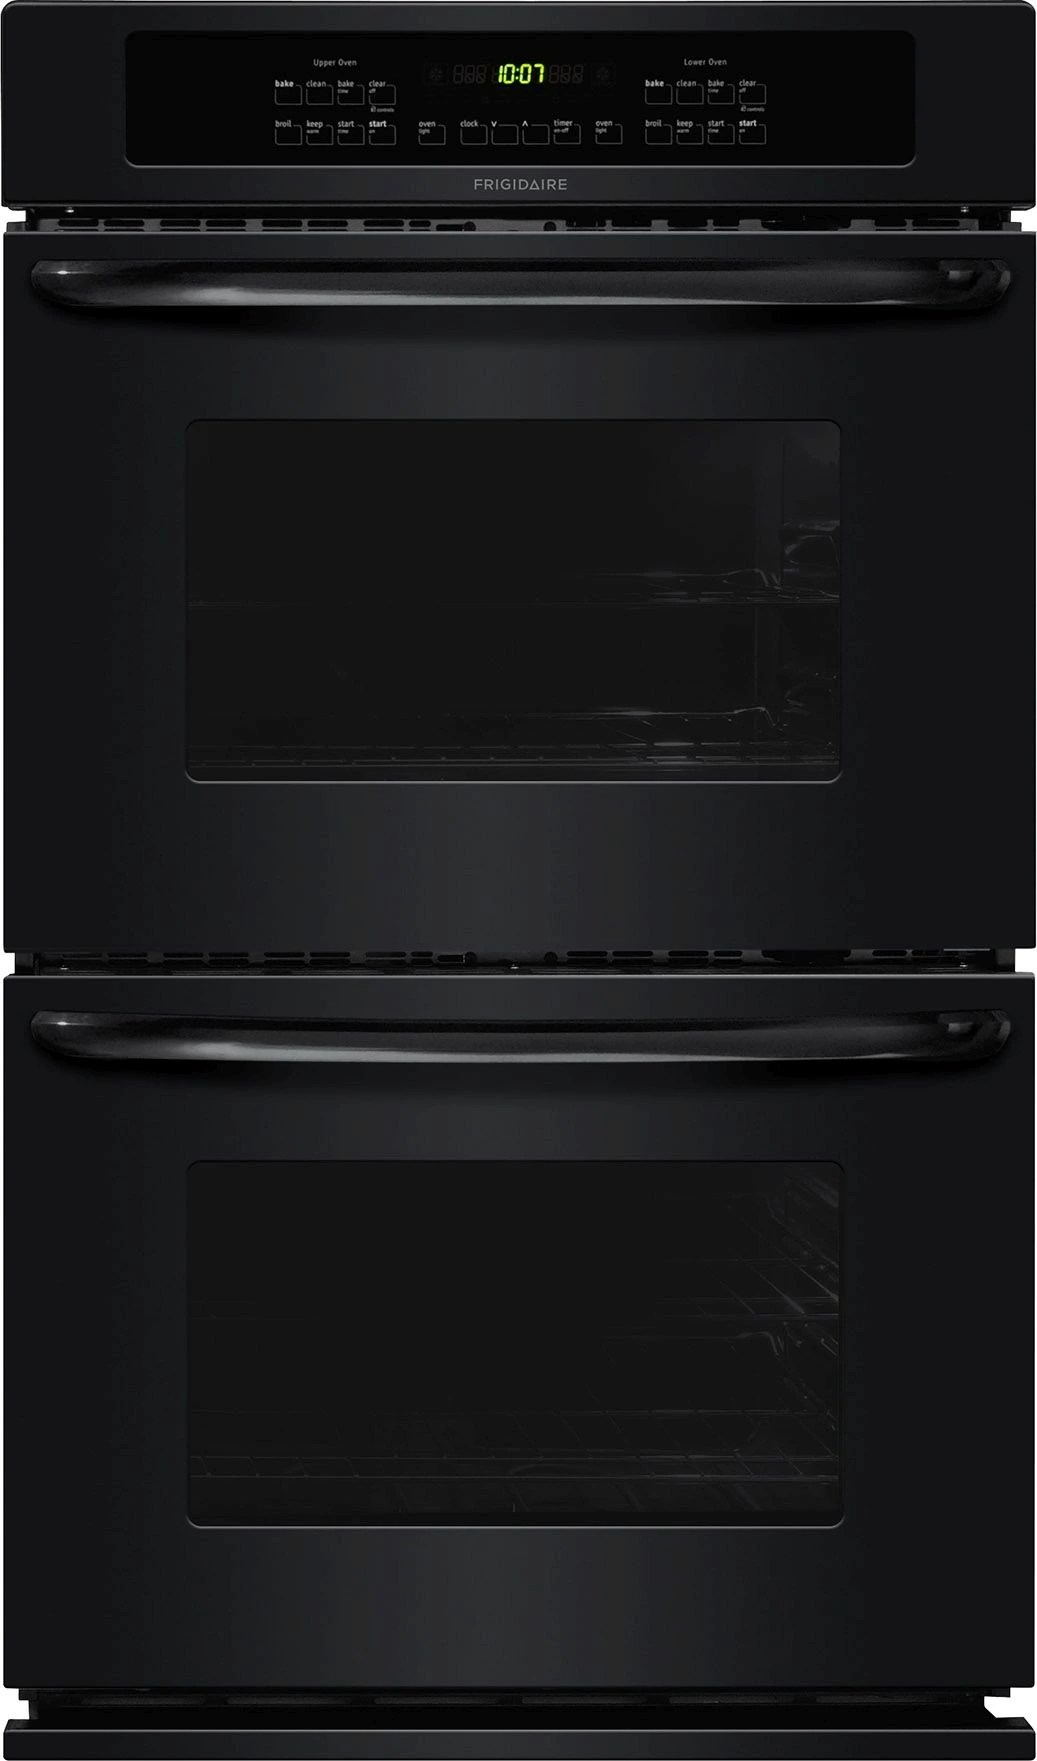 hight resolution of frigidaire 30 electric double oven built in black ffet3025pb tee vax home appliance kitchen center